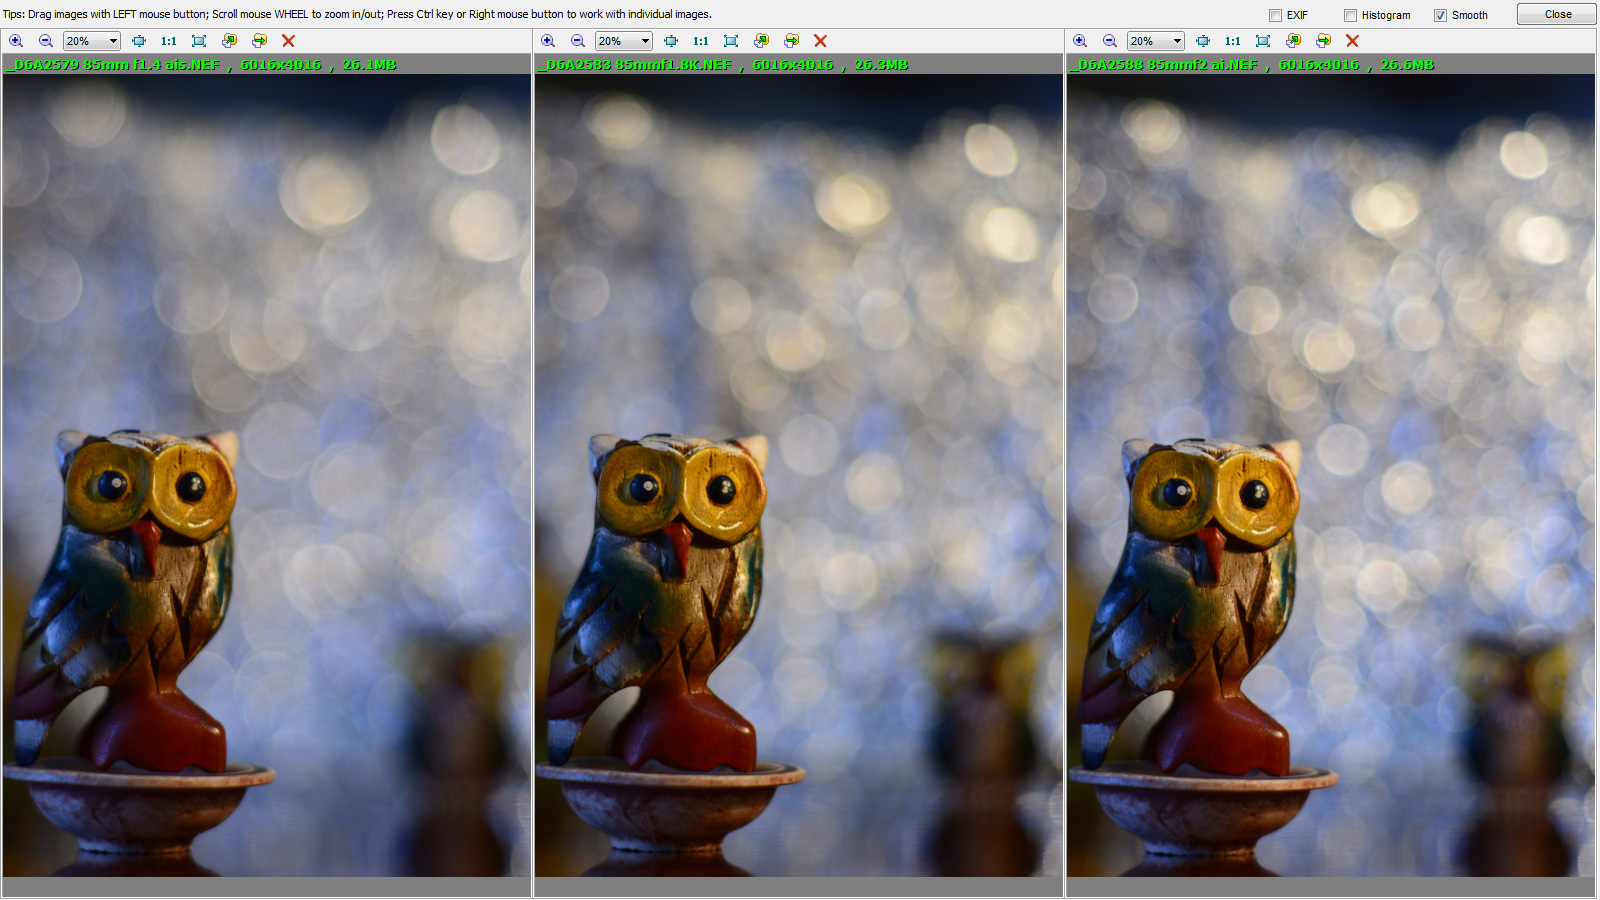 85mm-bokeh-wide-open | Wide open: Left to right: 85mm f/1 4